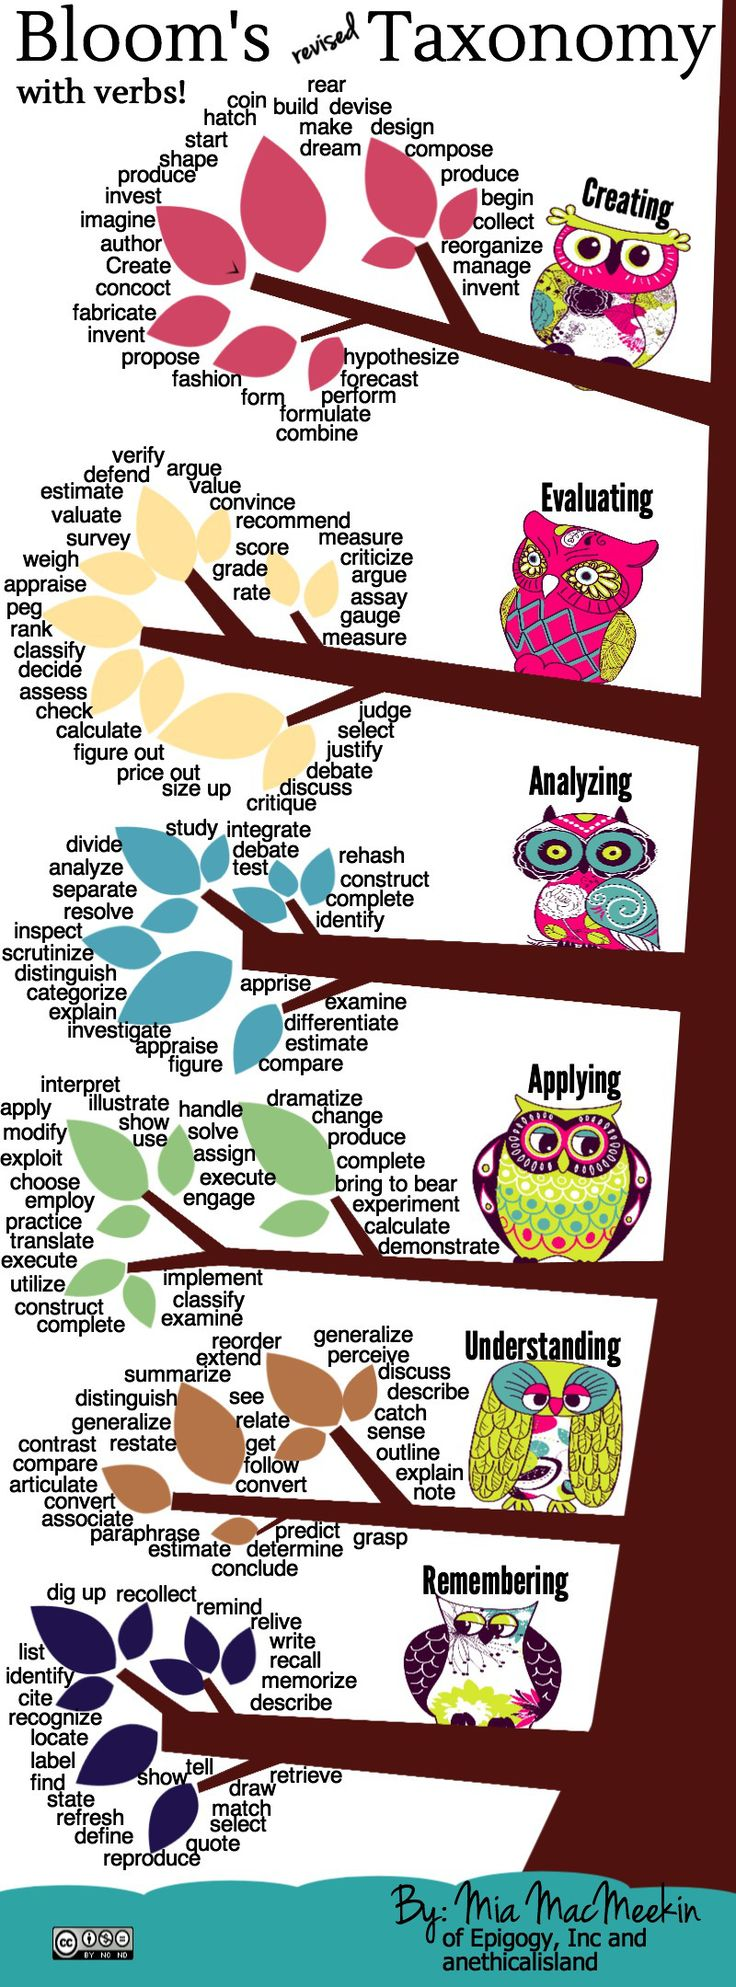 BLOOM'S REVISED TAXONOMY WITH VERBS!